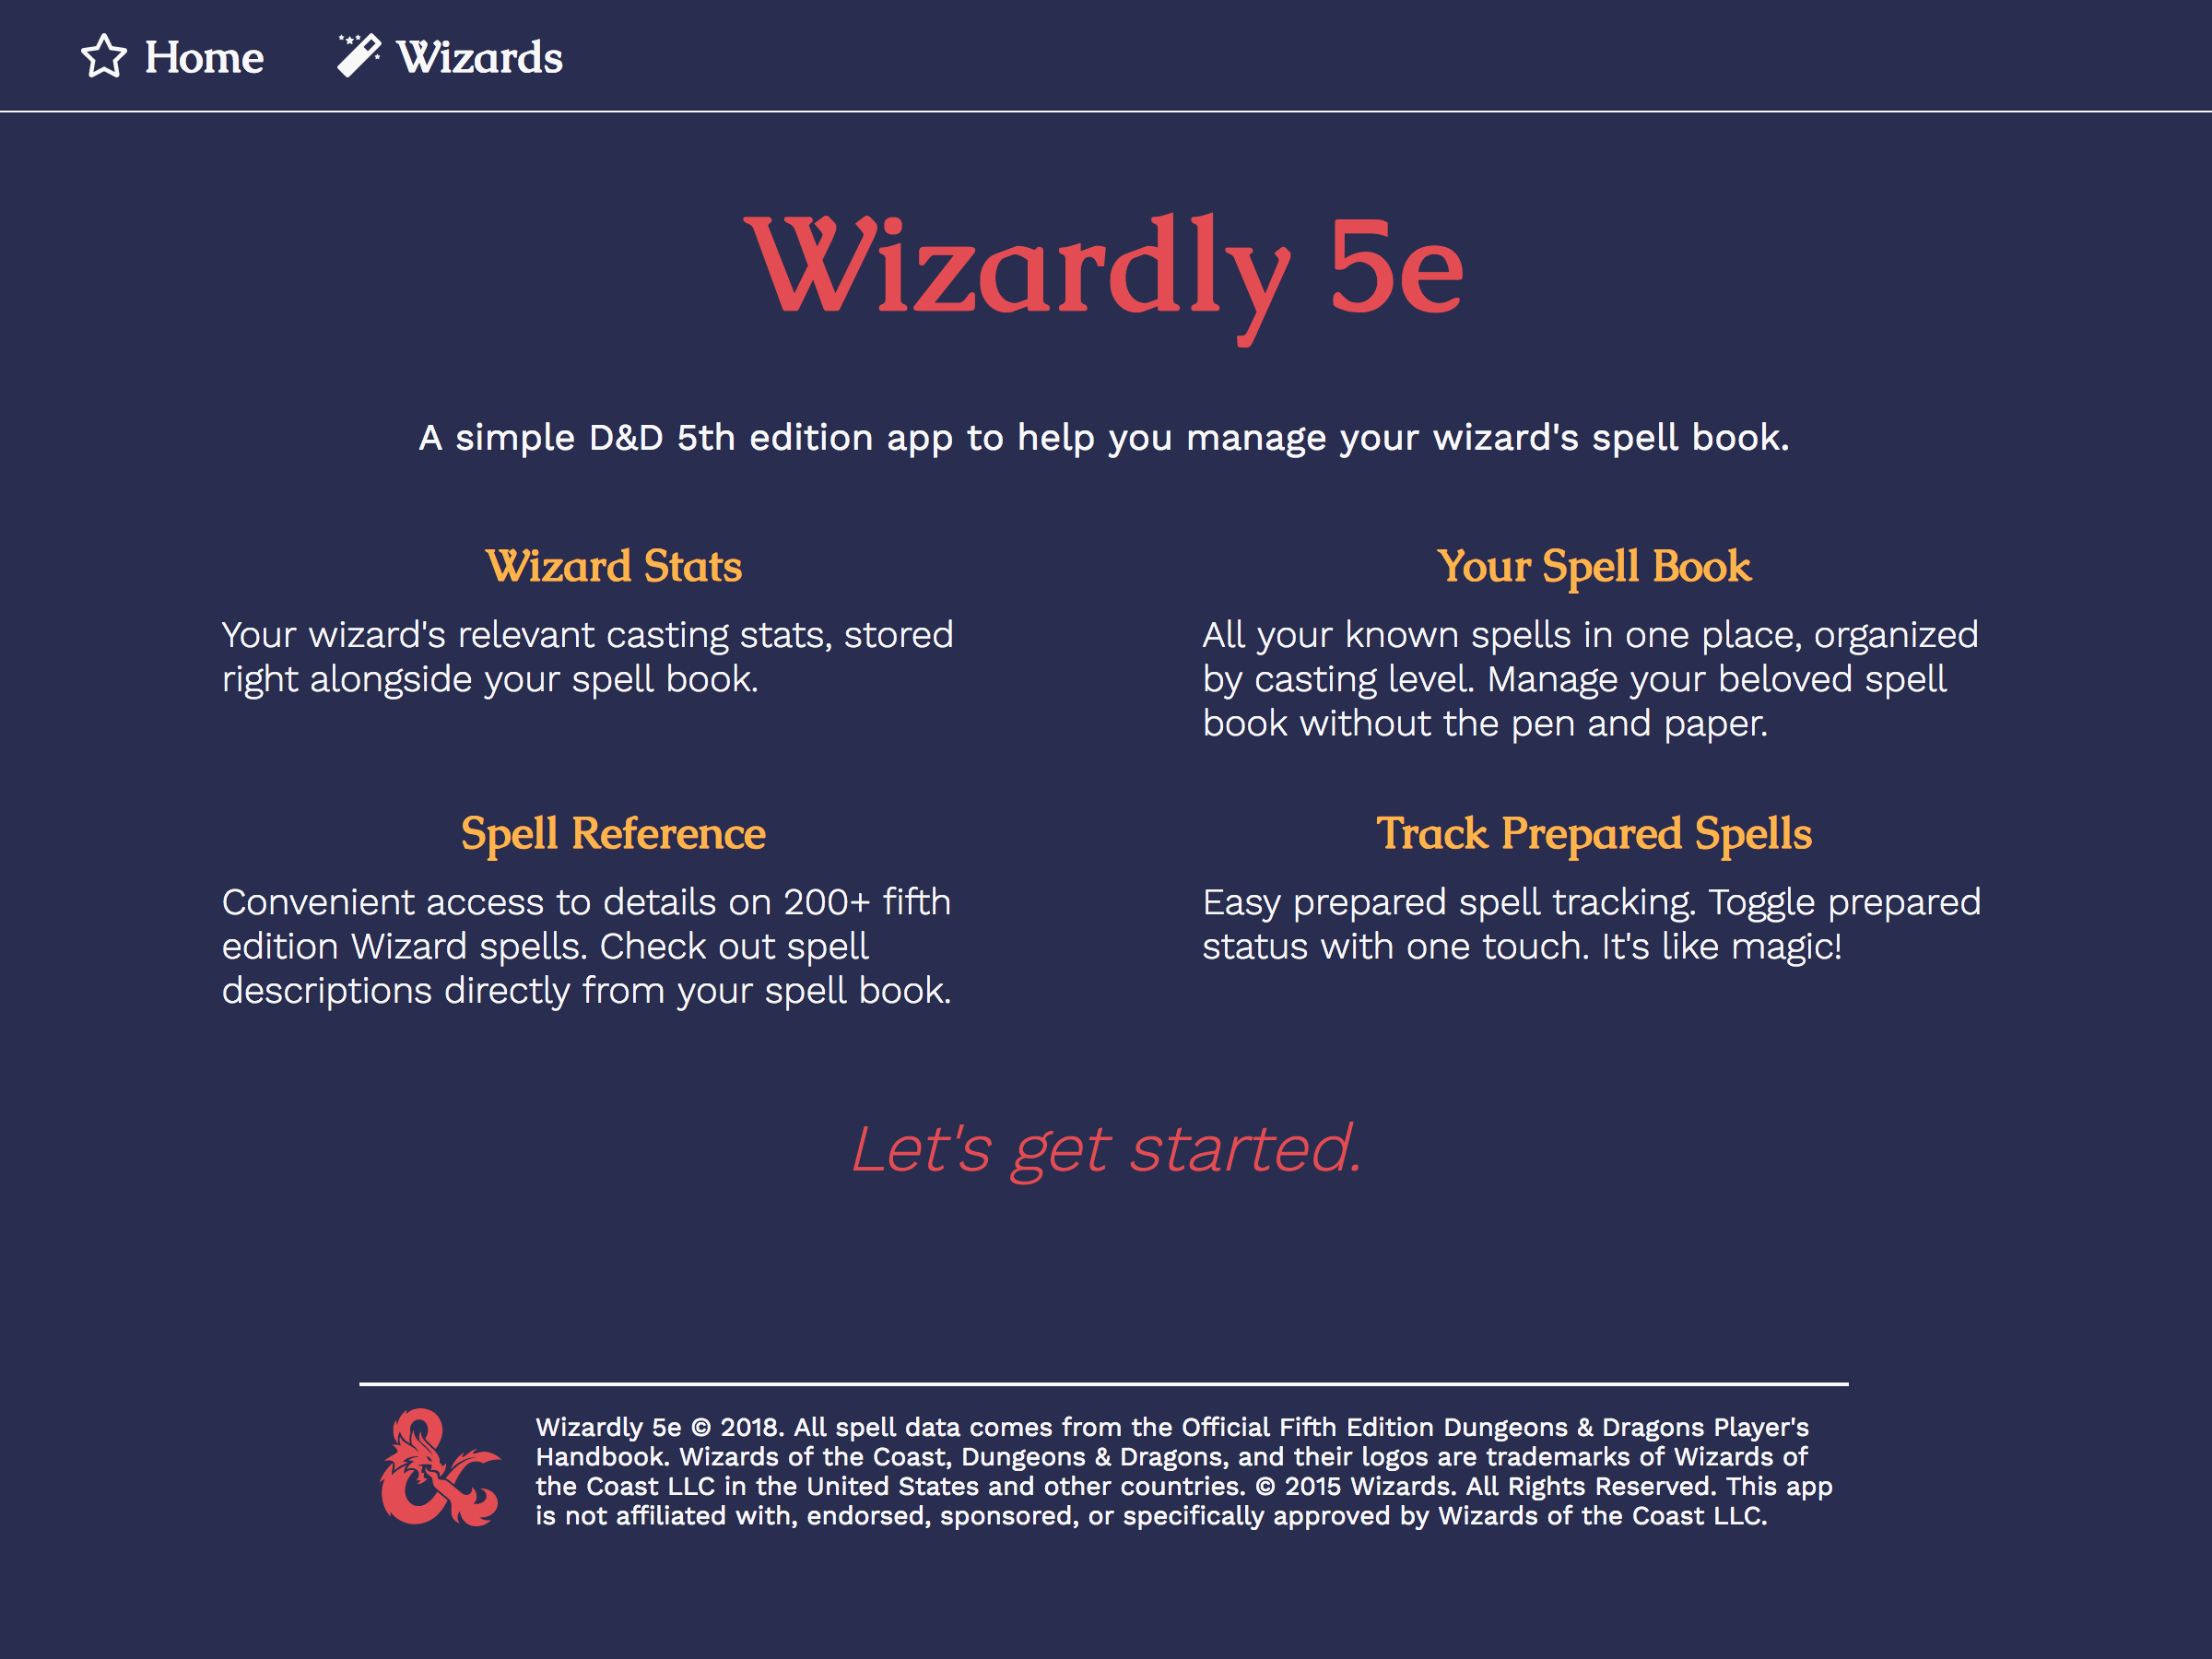 Wizardly-5e/readme md at master · owcollier/Wizardly-5e · GitHub